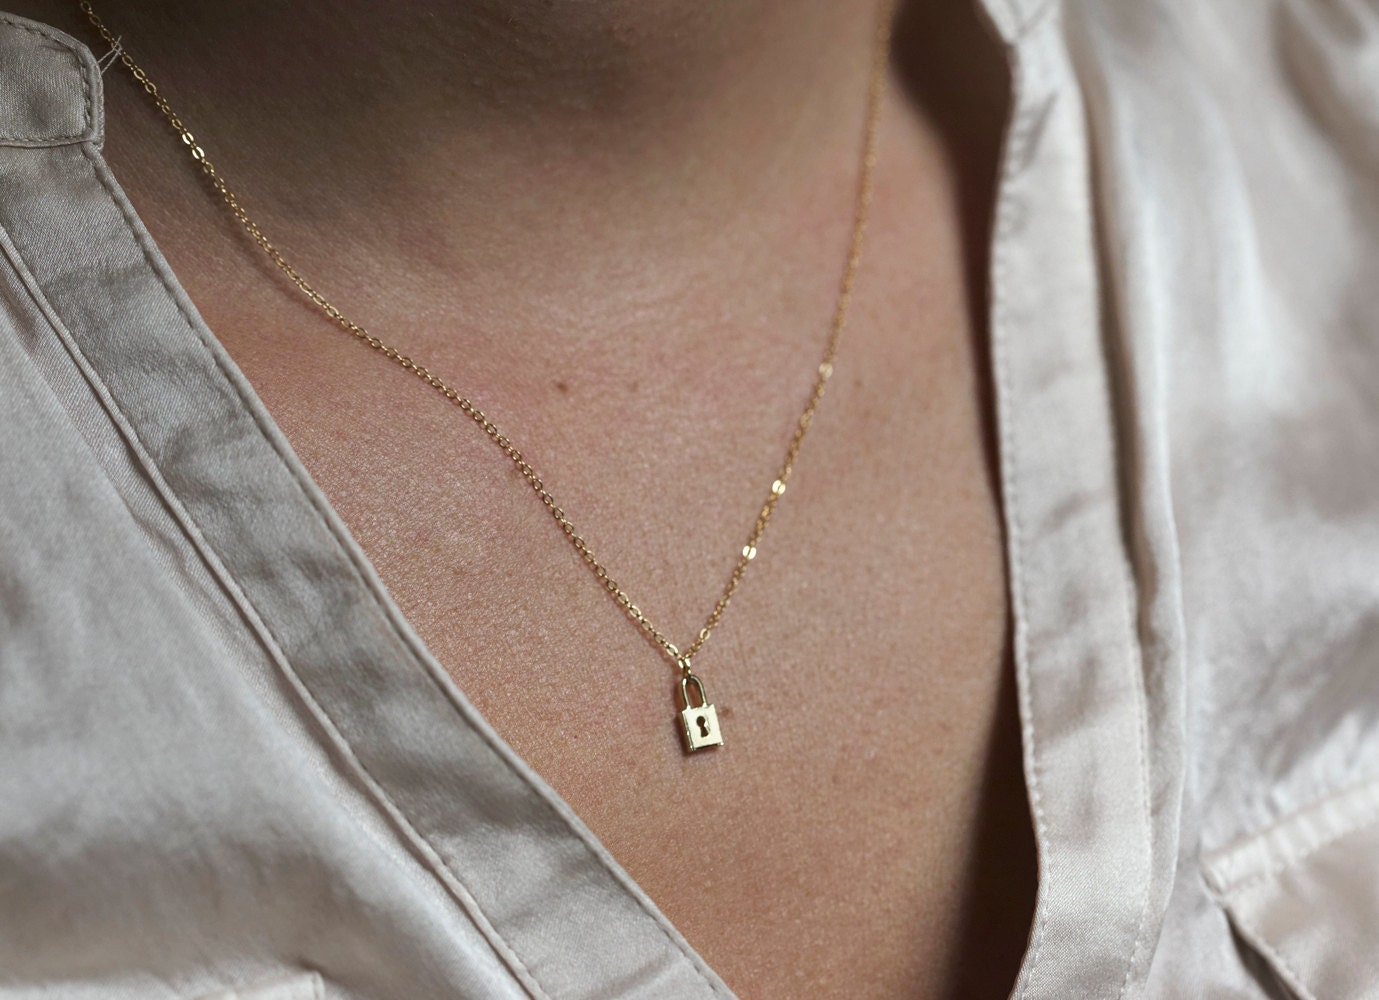 Lock Necklace Dainty Necklace Everyday Necklace Luck